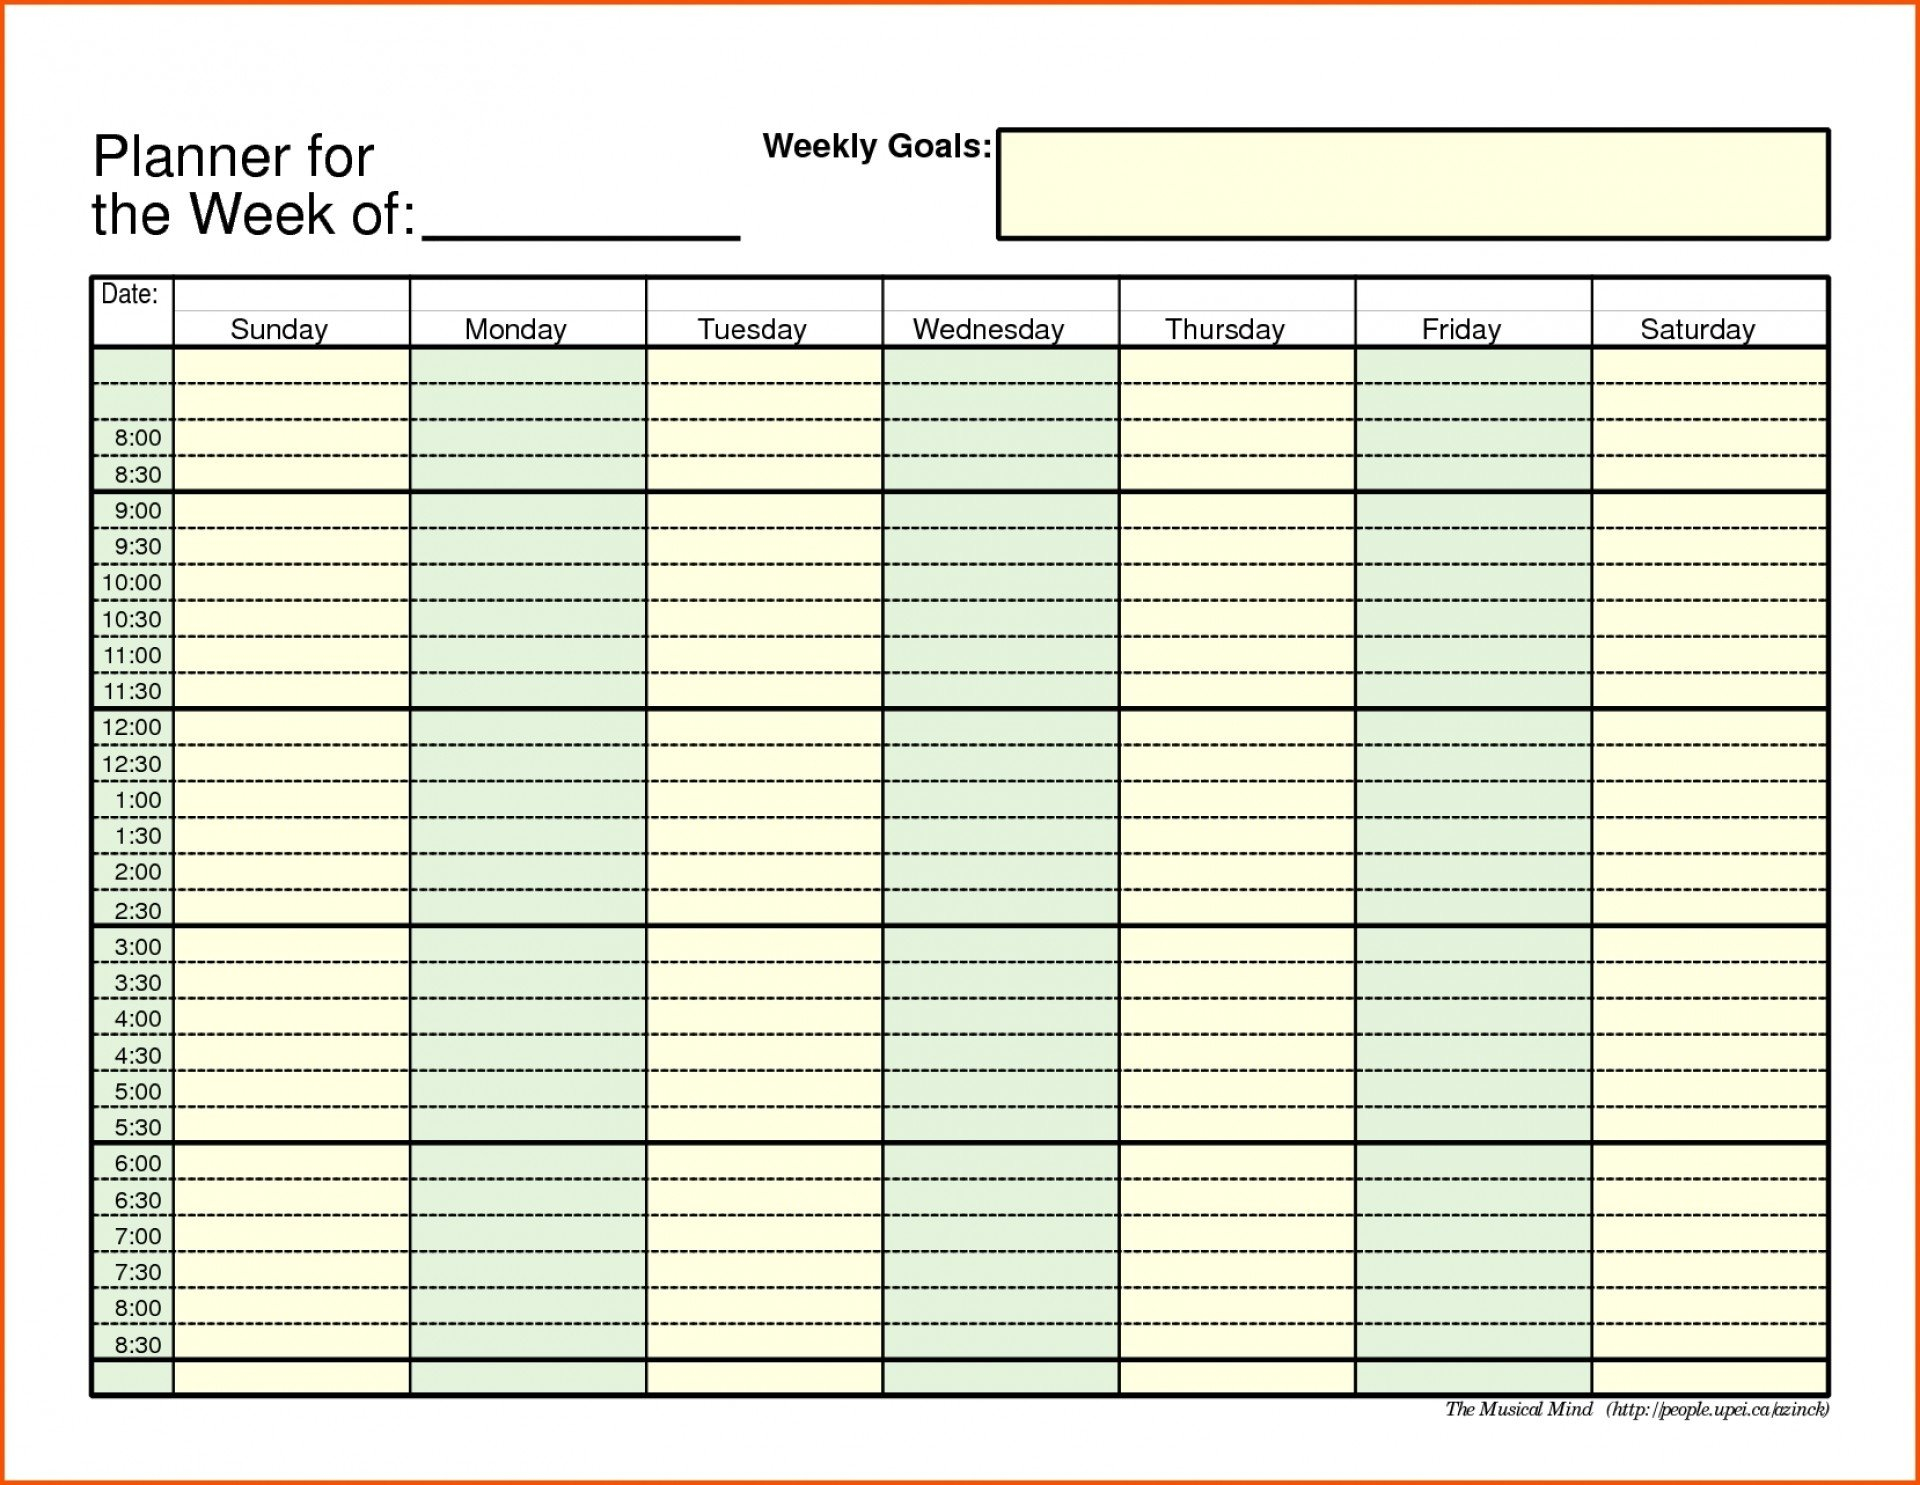 Daily Schedule With Time Slots - Calendar Inspiration Design Free Printable Calendars With Time Slots